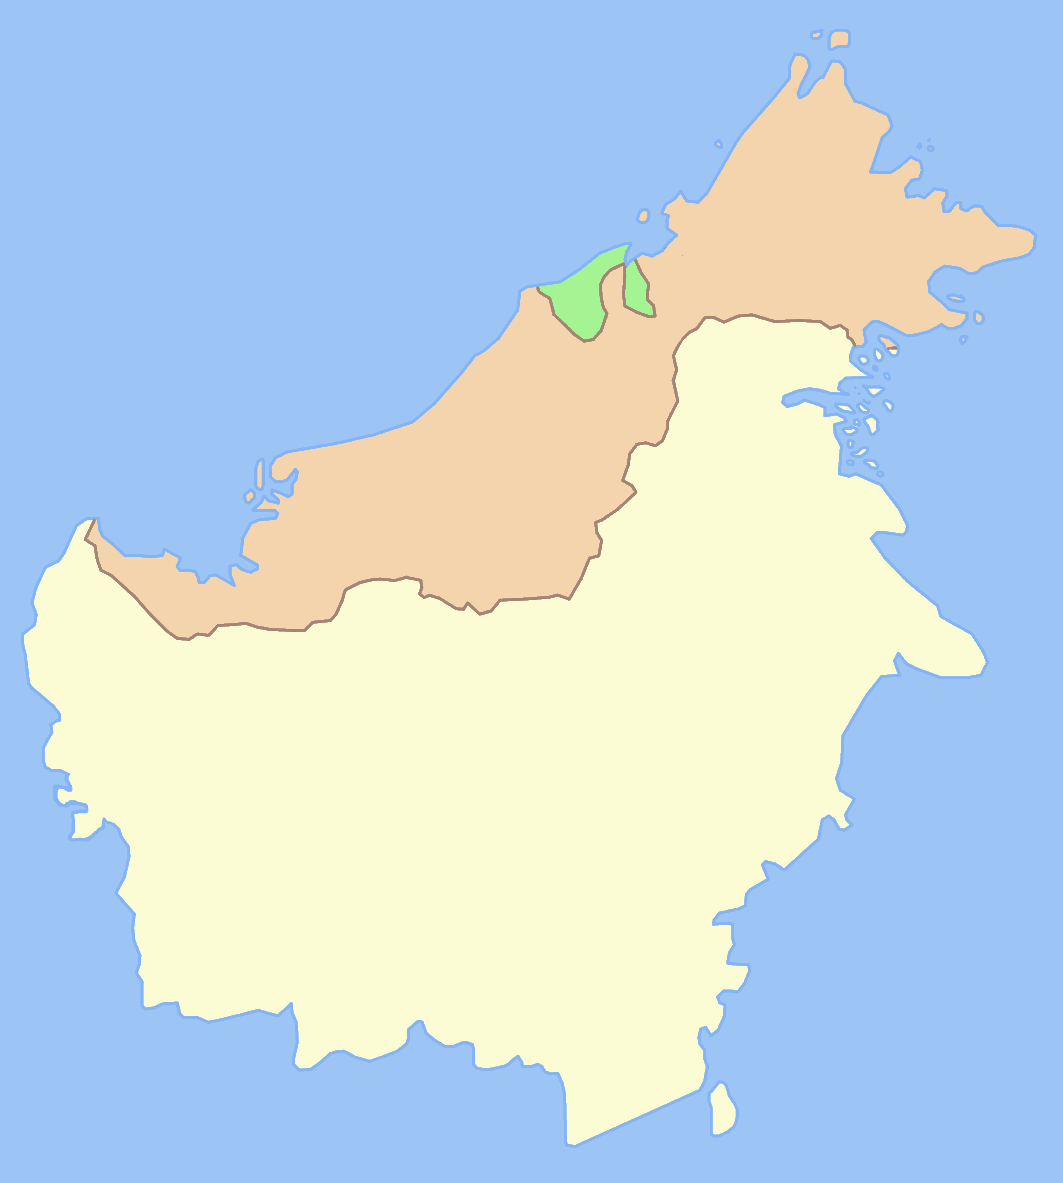 file borneo map with borders png wikimedia commons https commons wikimedia org wiki file borneo map with borders png